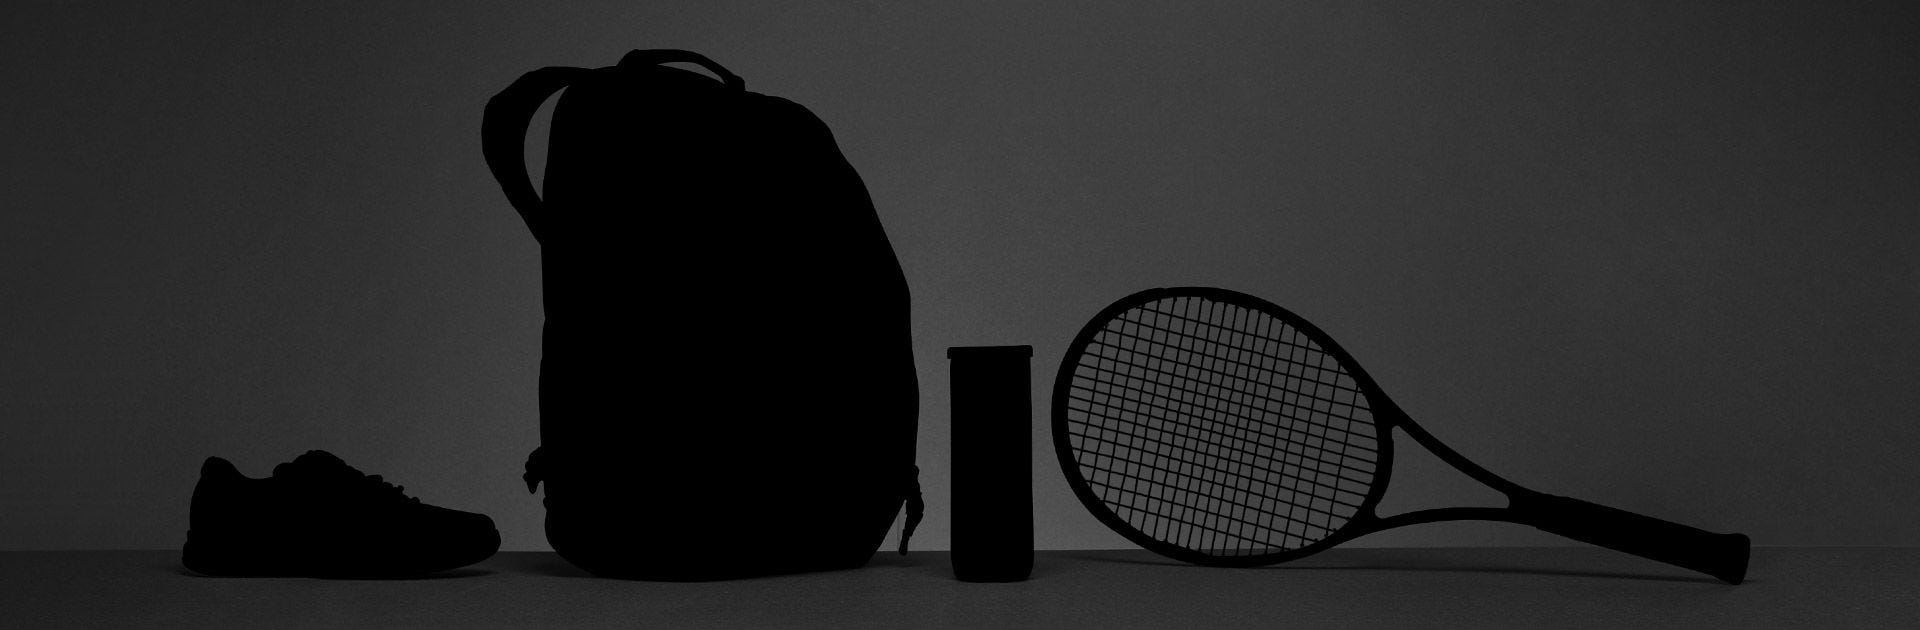 Exclusive Tennis Products